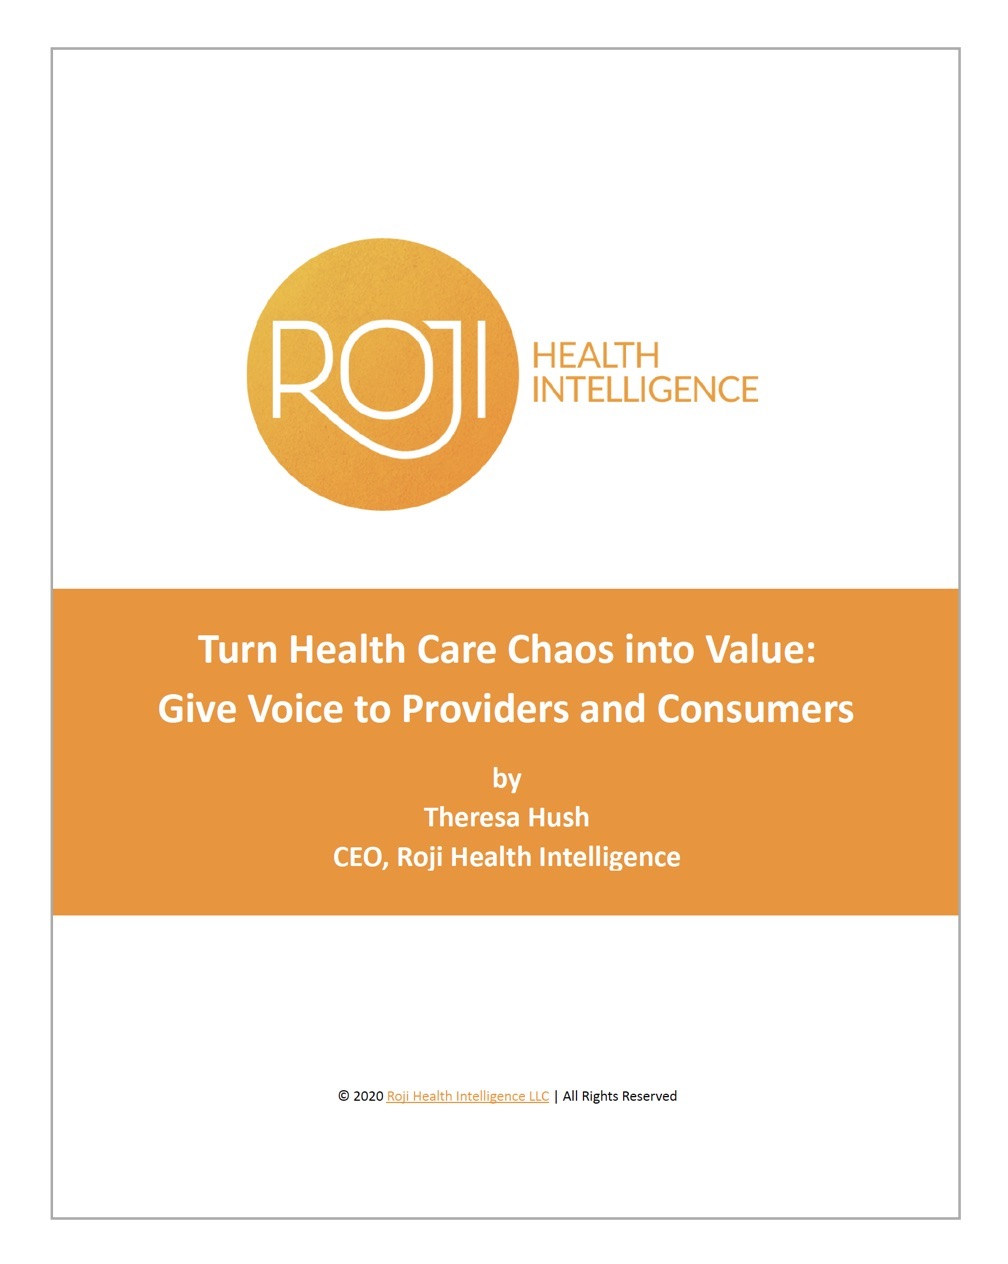 Get the eBook: Turn Health Care Chaos into Value – Give Voice to Providers and Consumers